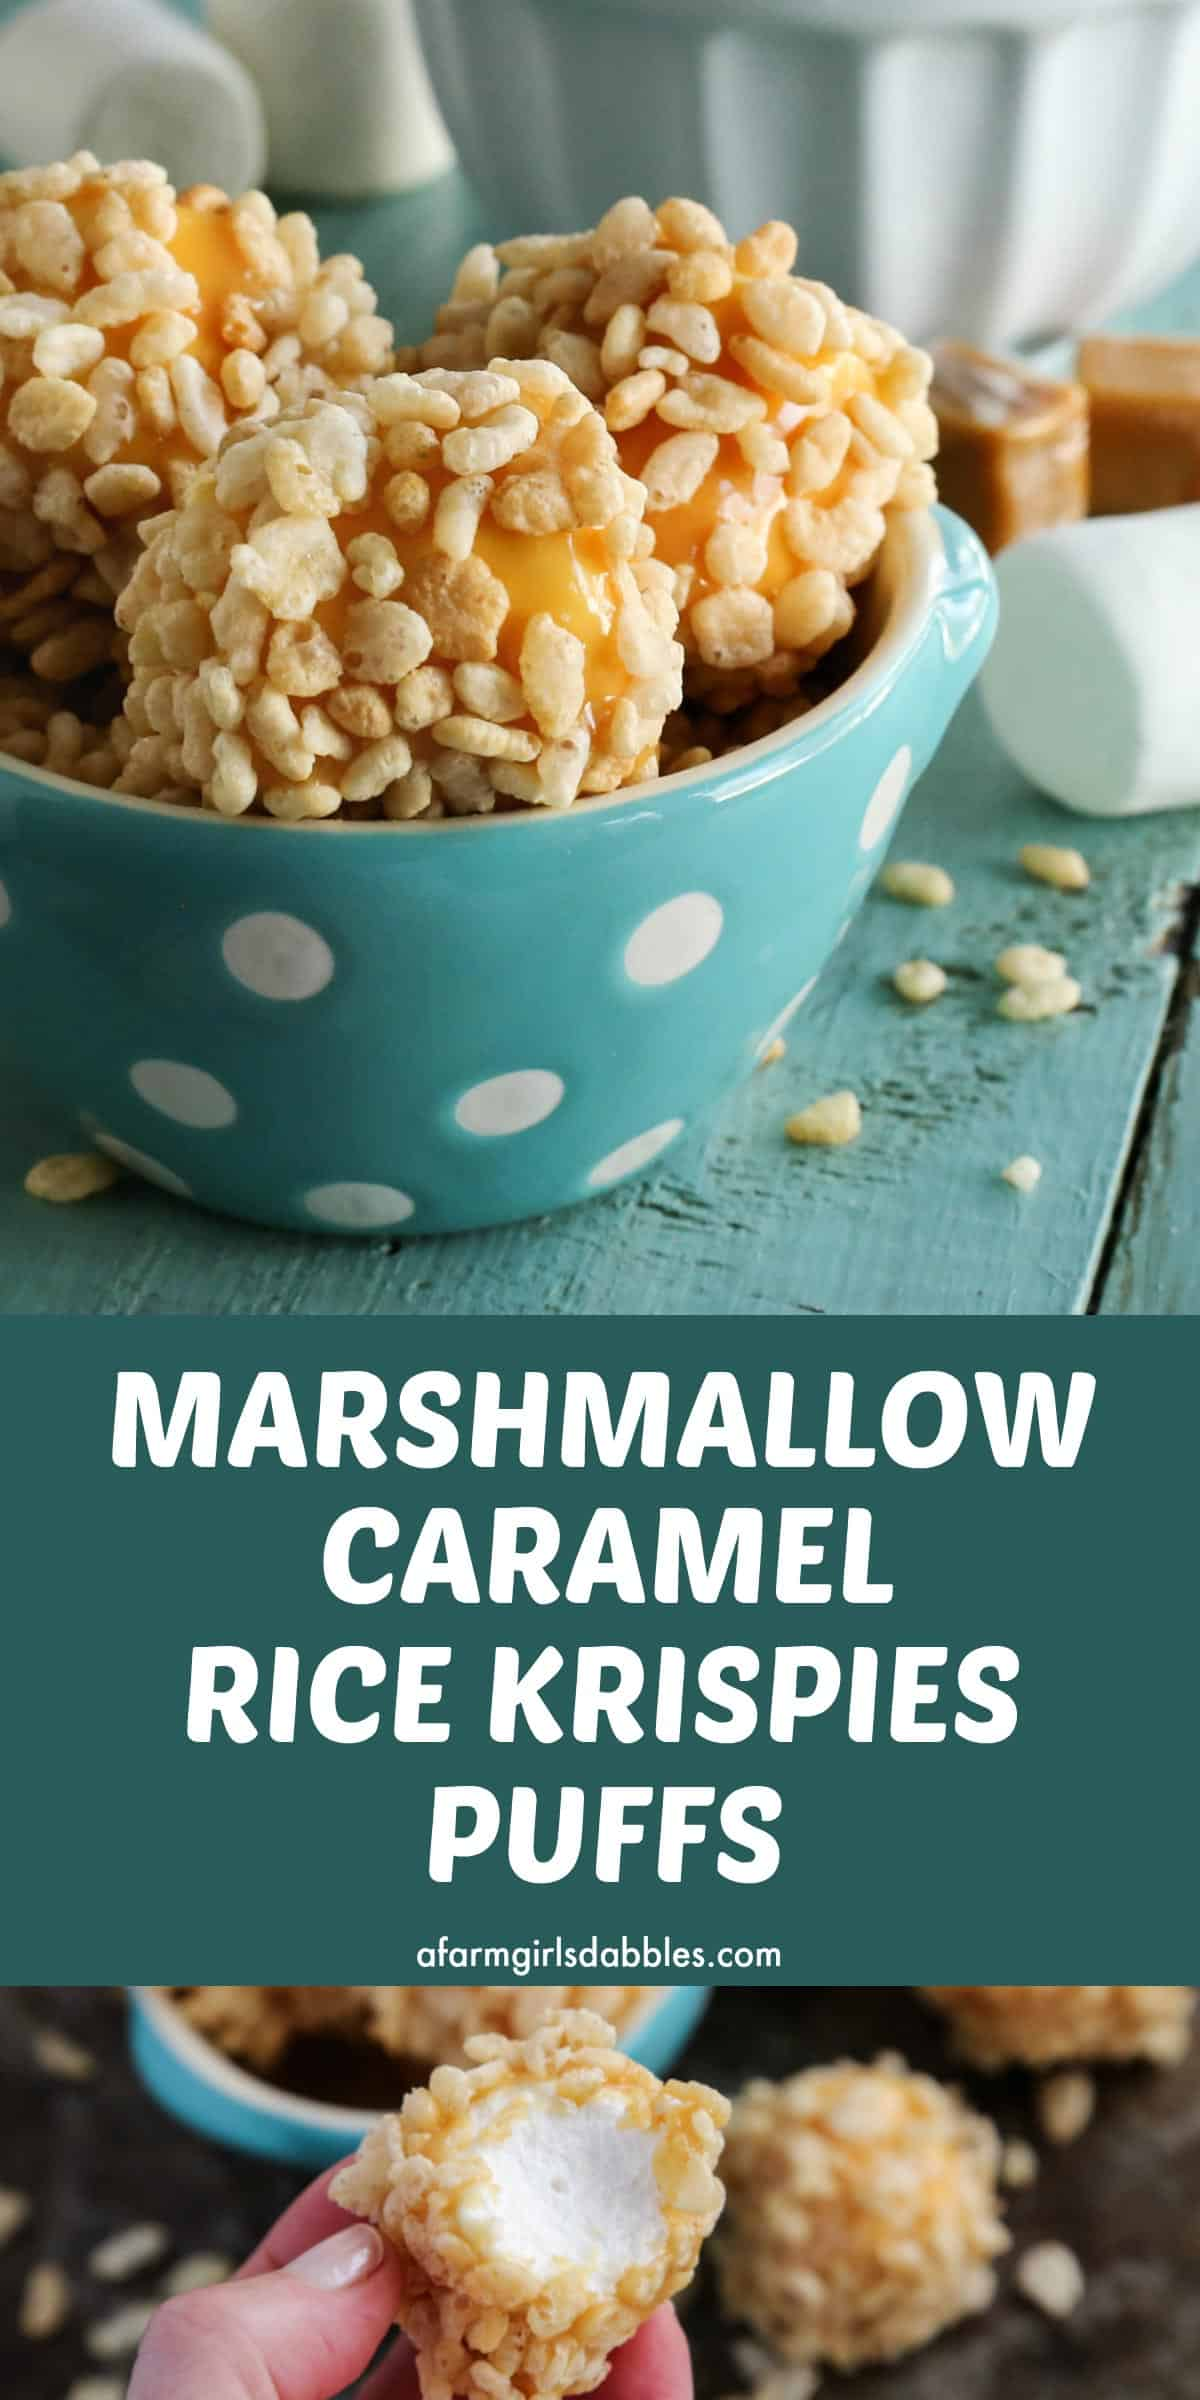 pinterest image of marshmallow caramel rice krispies puffs in an aqua polka dot bowl